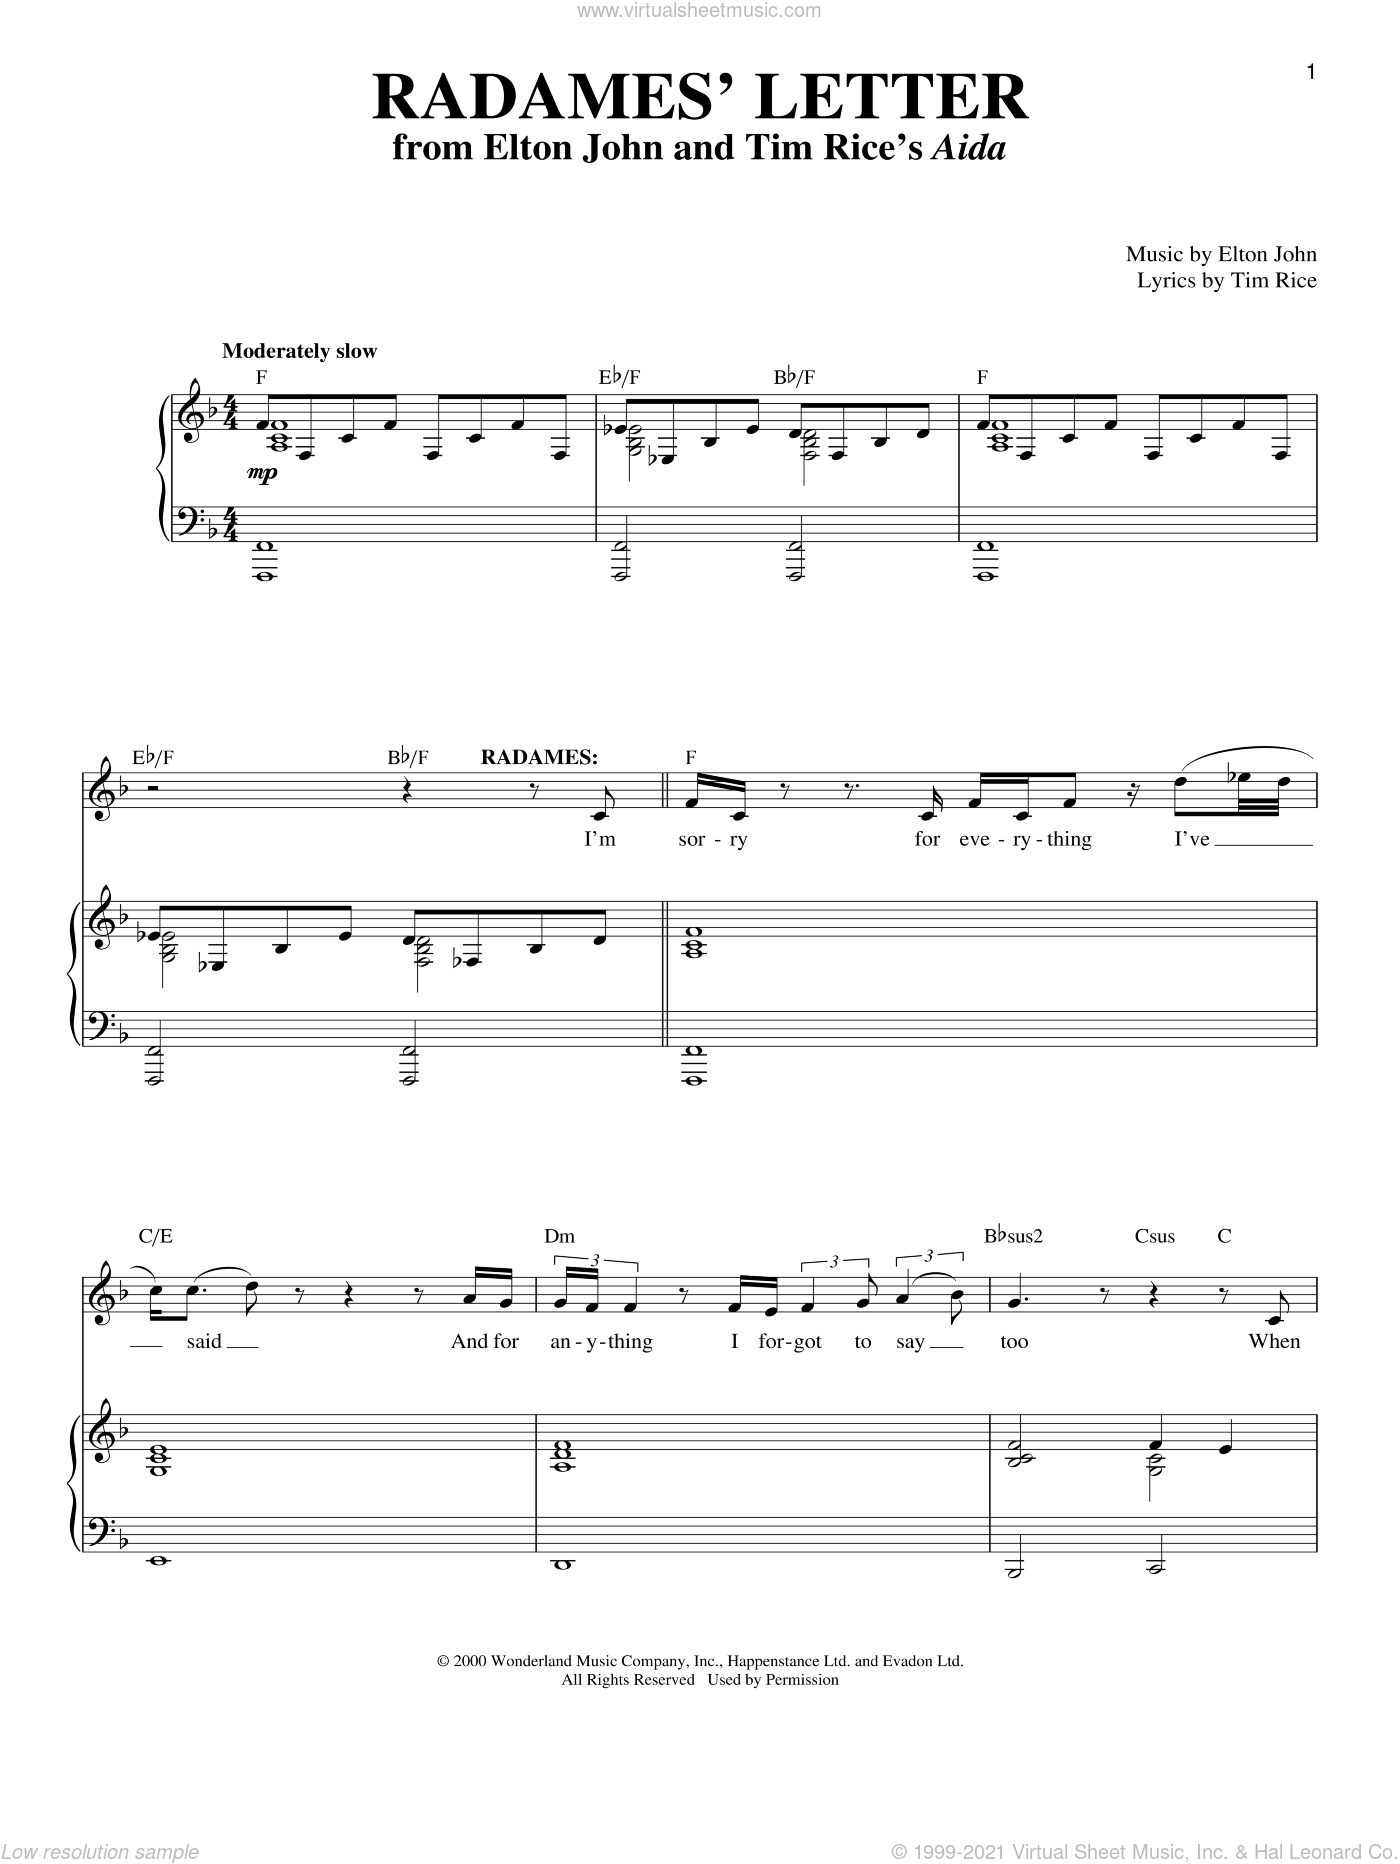 Radames' Letter sheet music for voice and piano by Elton John and Tim Rice, intermediate skill level